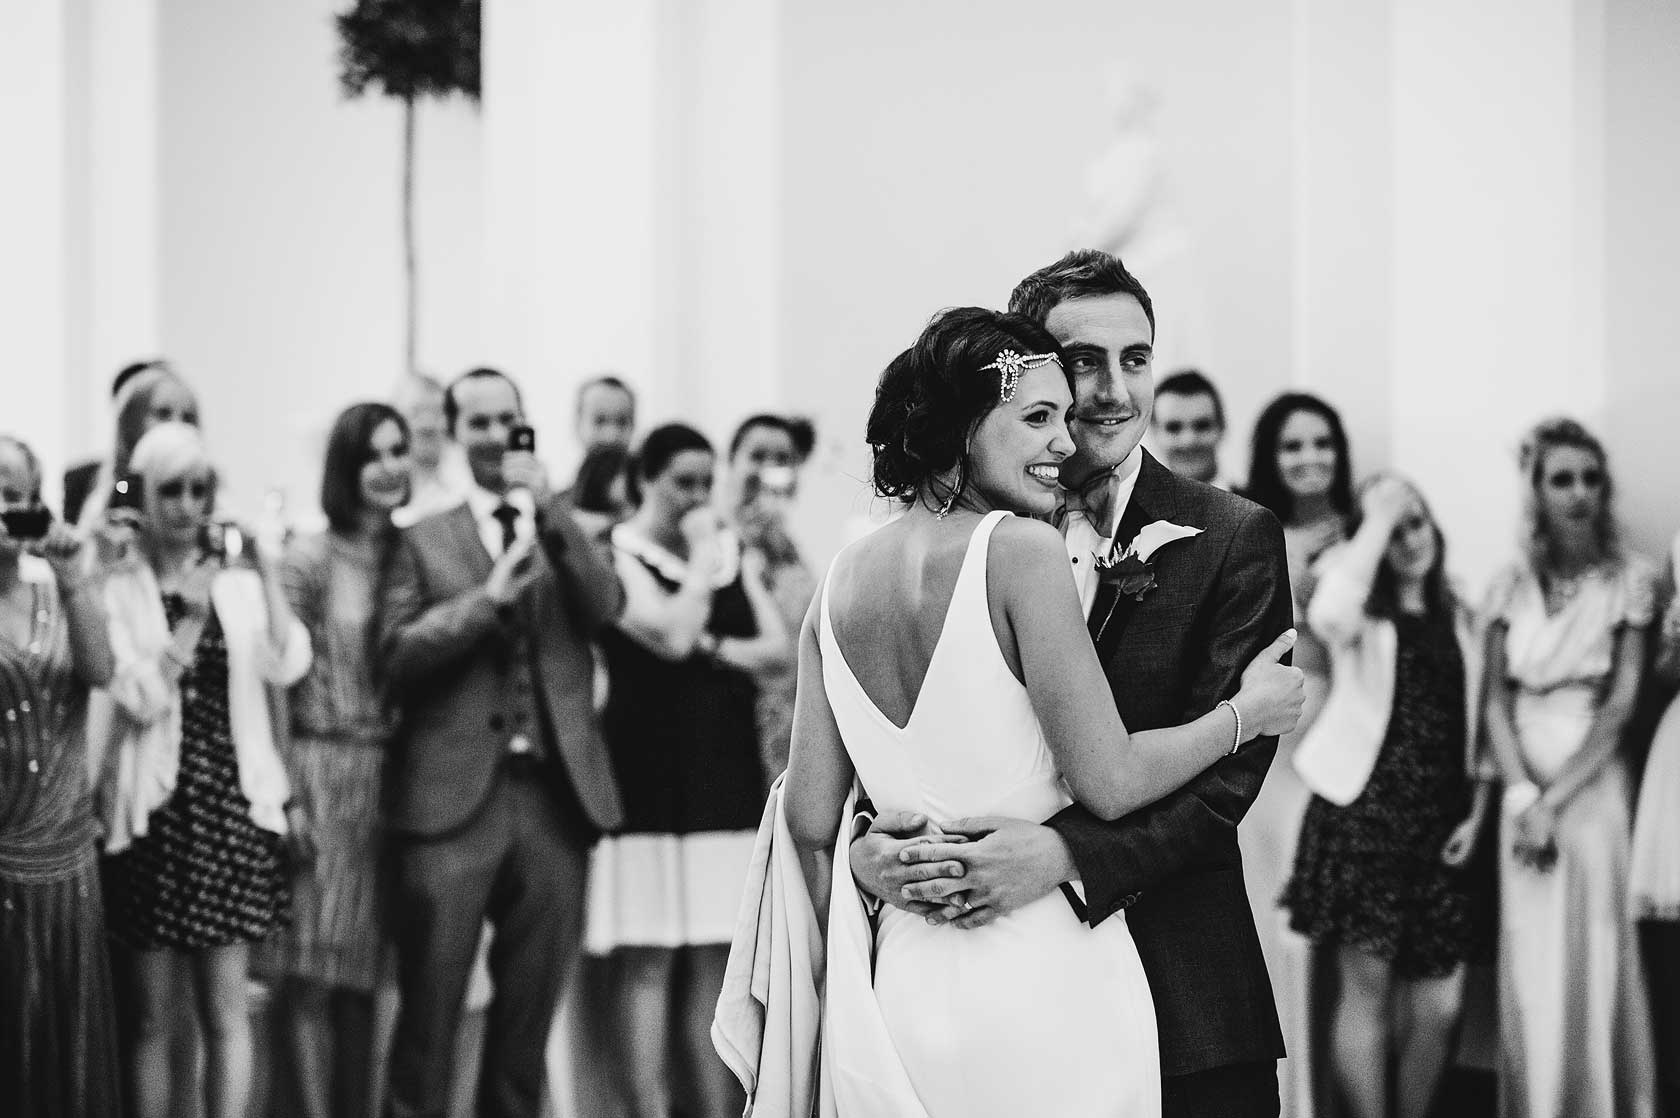 Reportage Wedding Photography at Blenheim Palace